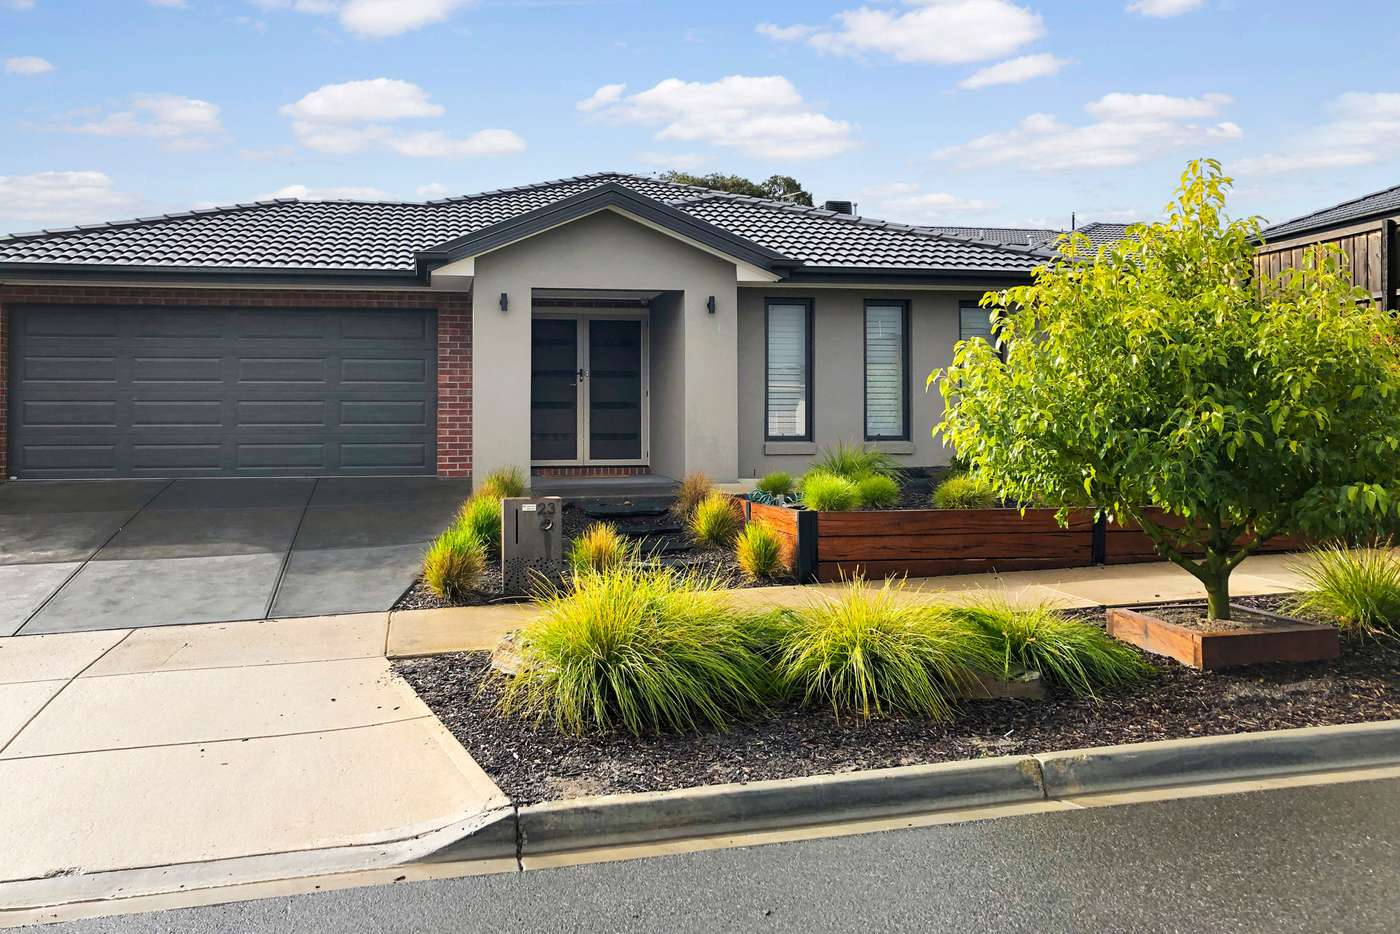 Main view of Homely house listing, 23 Resolution Circuit, Doreen VIC 3754